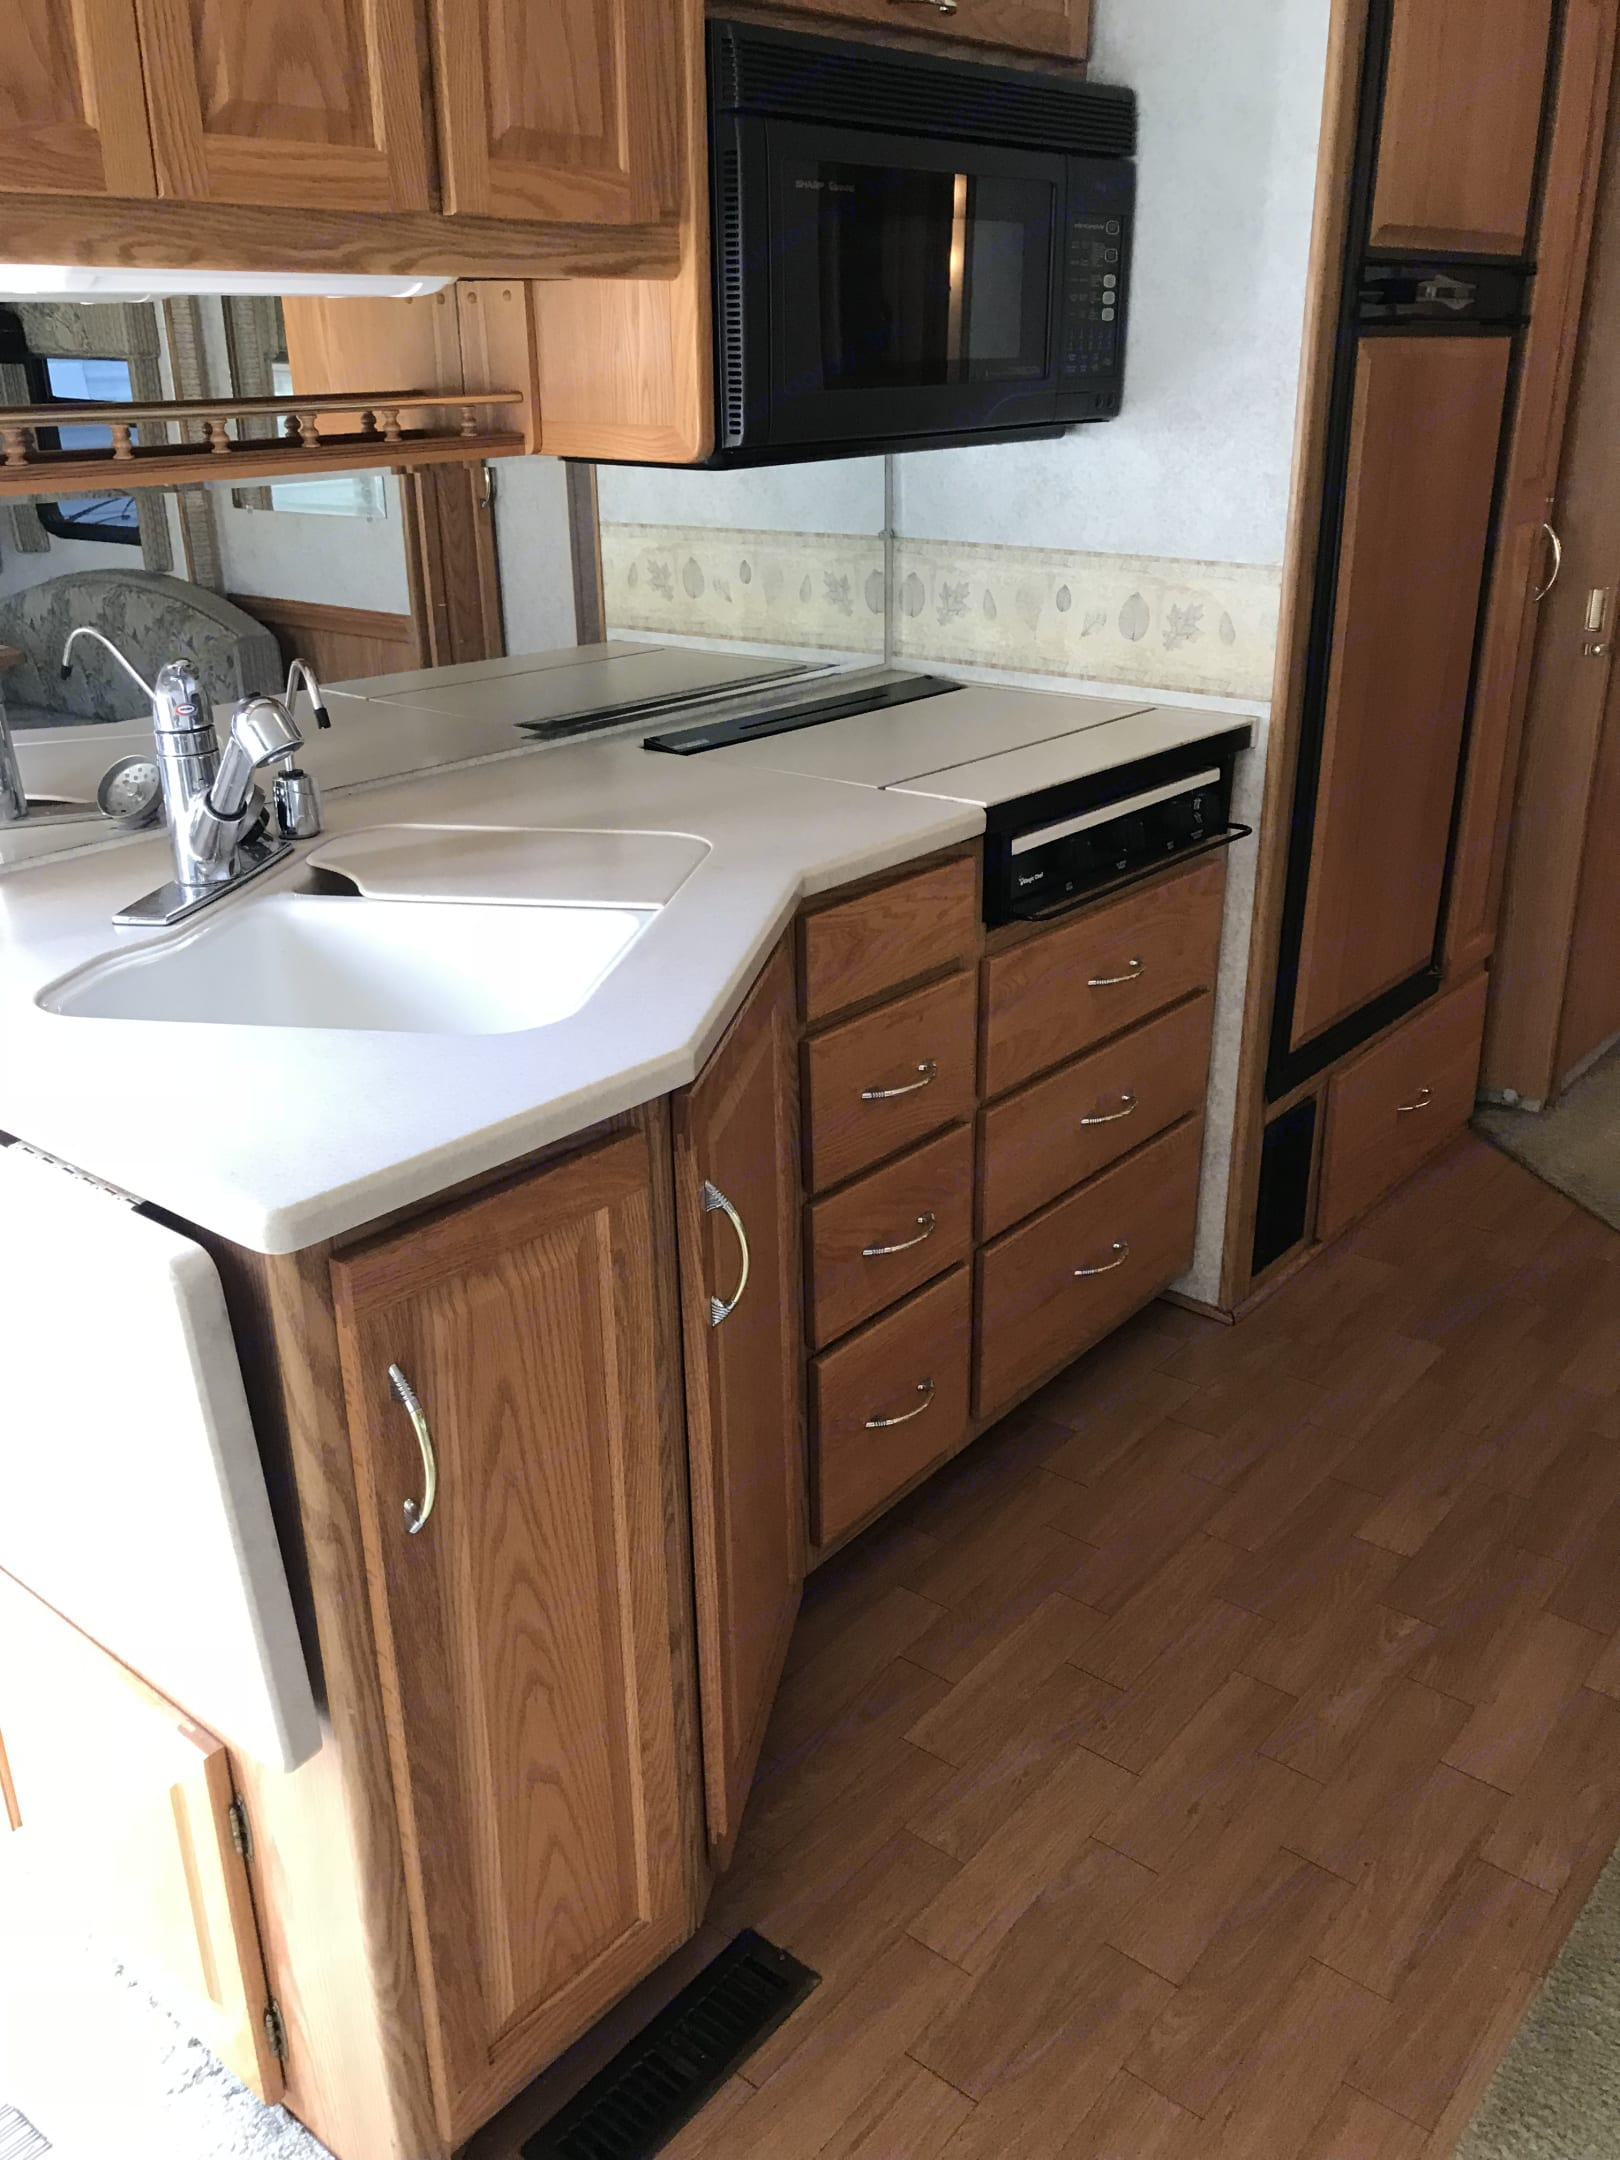 Solid surface counter tops. Filtered drinking water. Itasca Suncruiser 2002